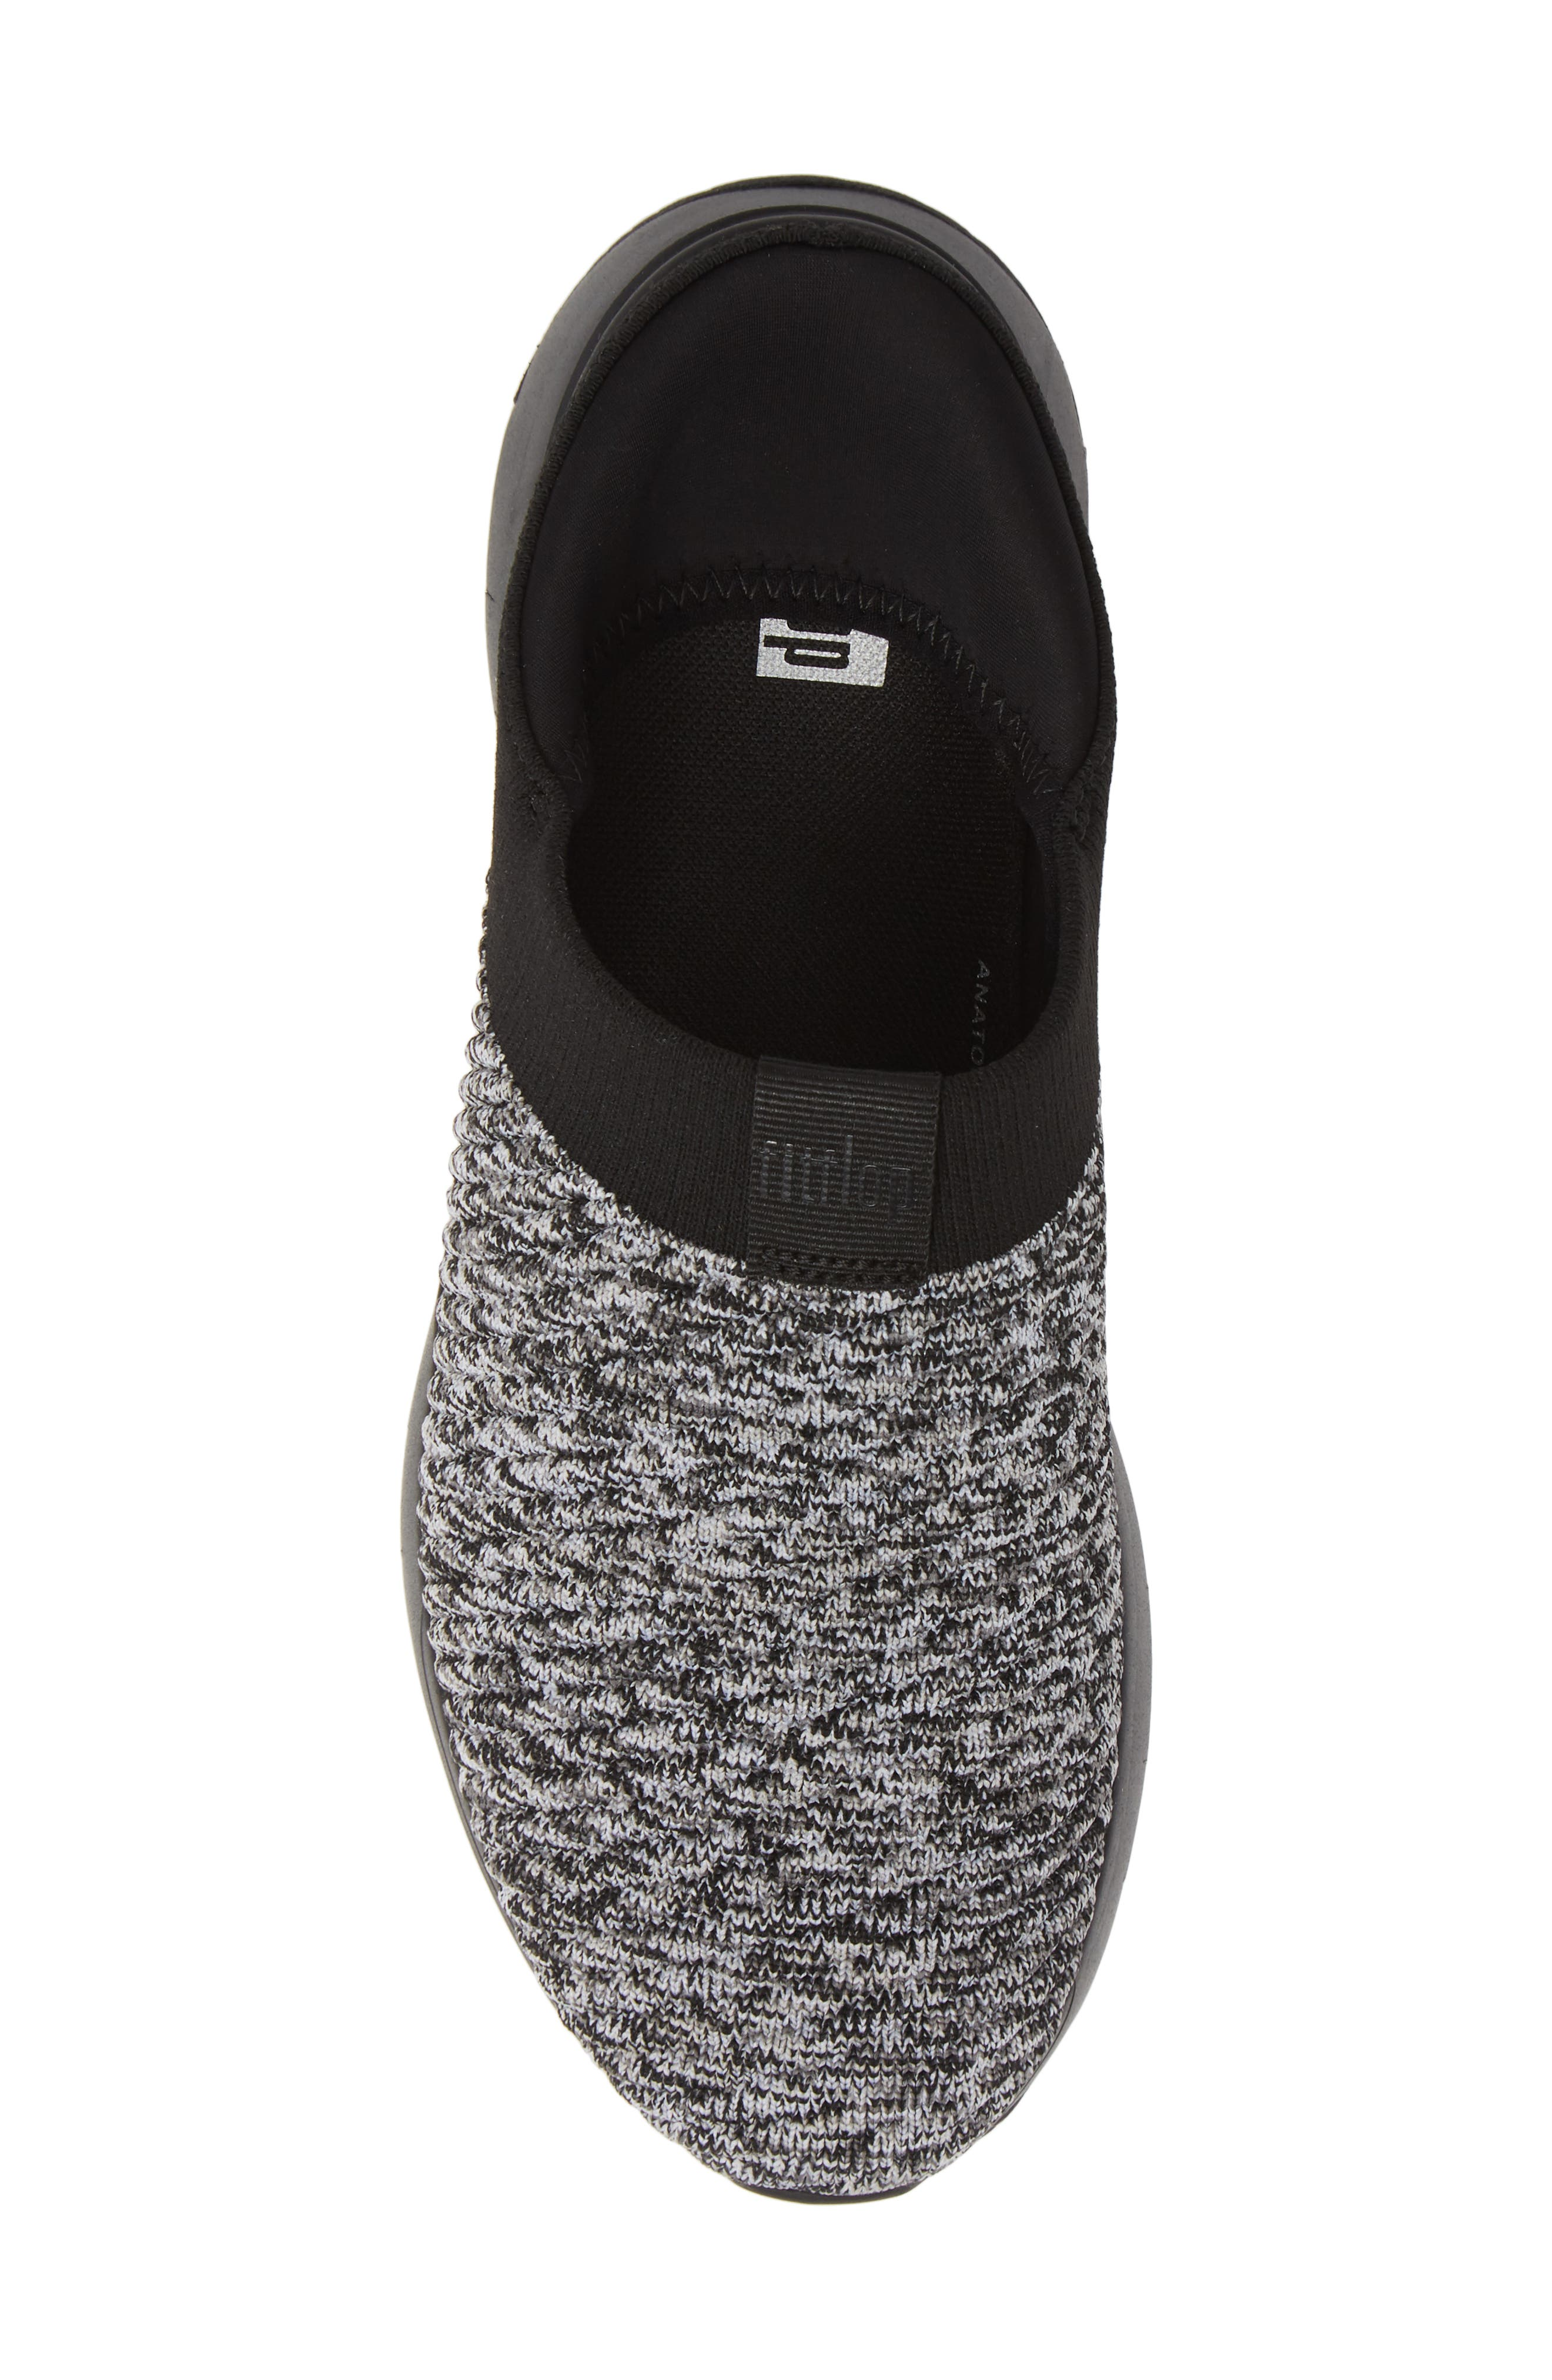 Artknit<sup>™</sup> Convertible Slip-On Sneaker,                             Alternate thumbnail 6, color,                             BLACK MIX